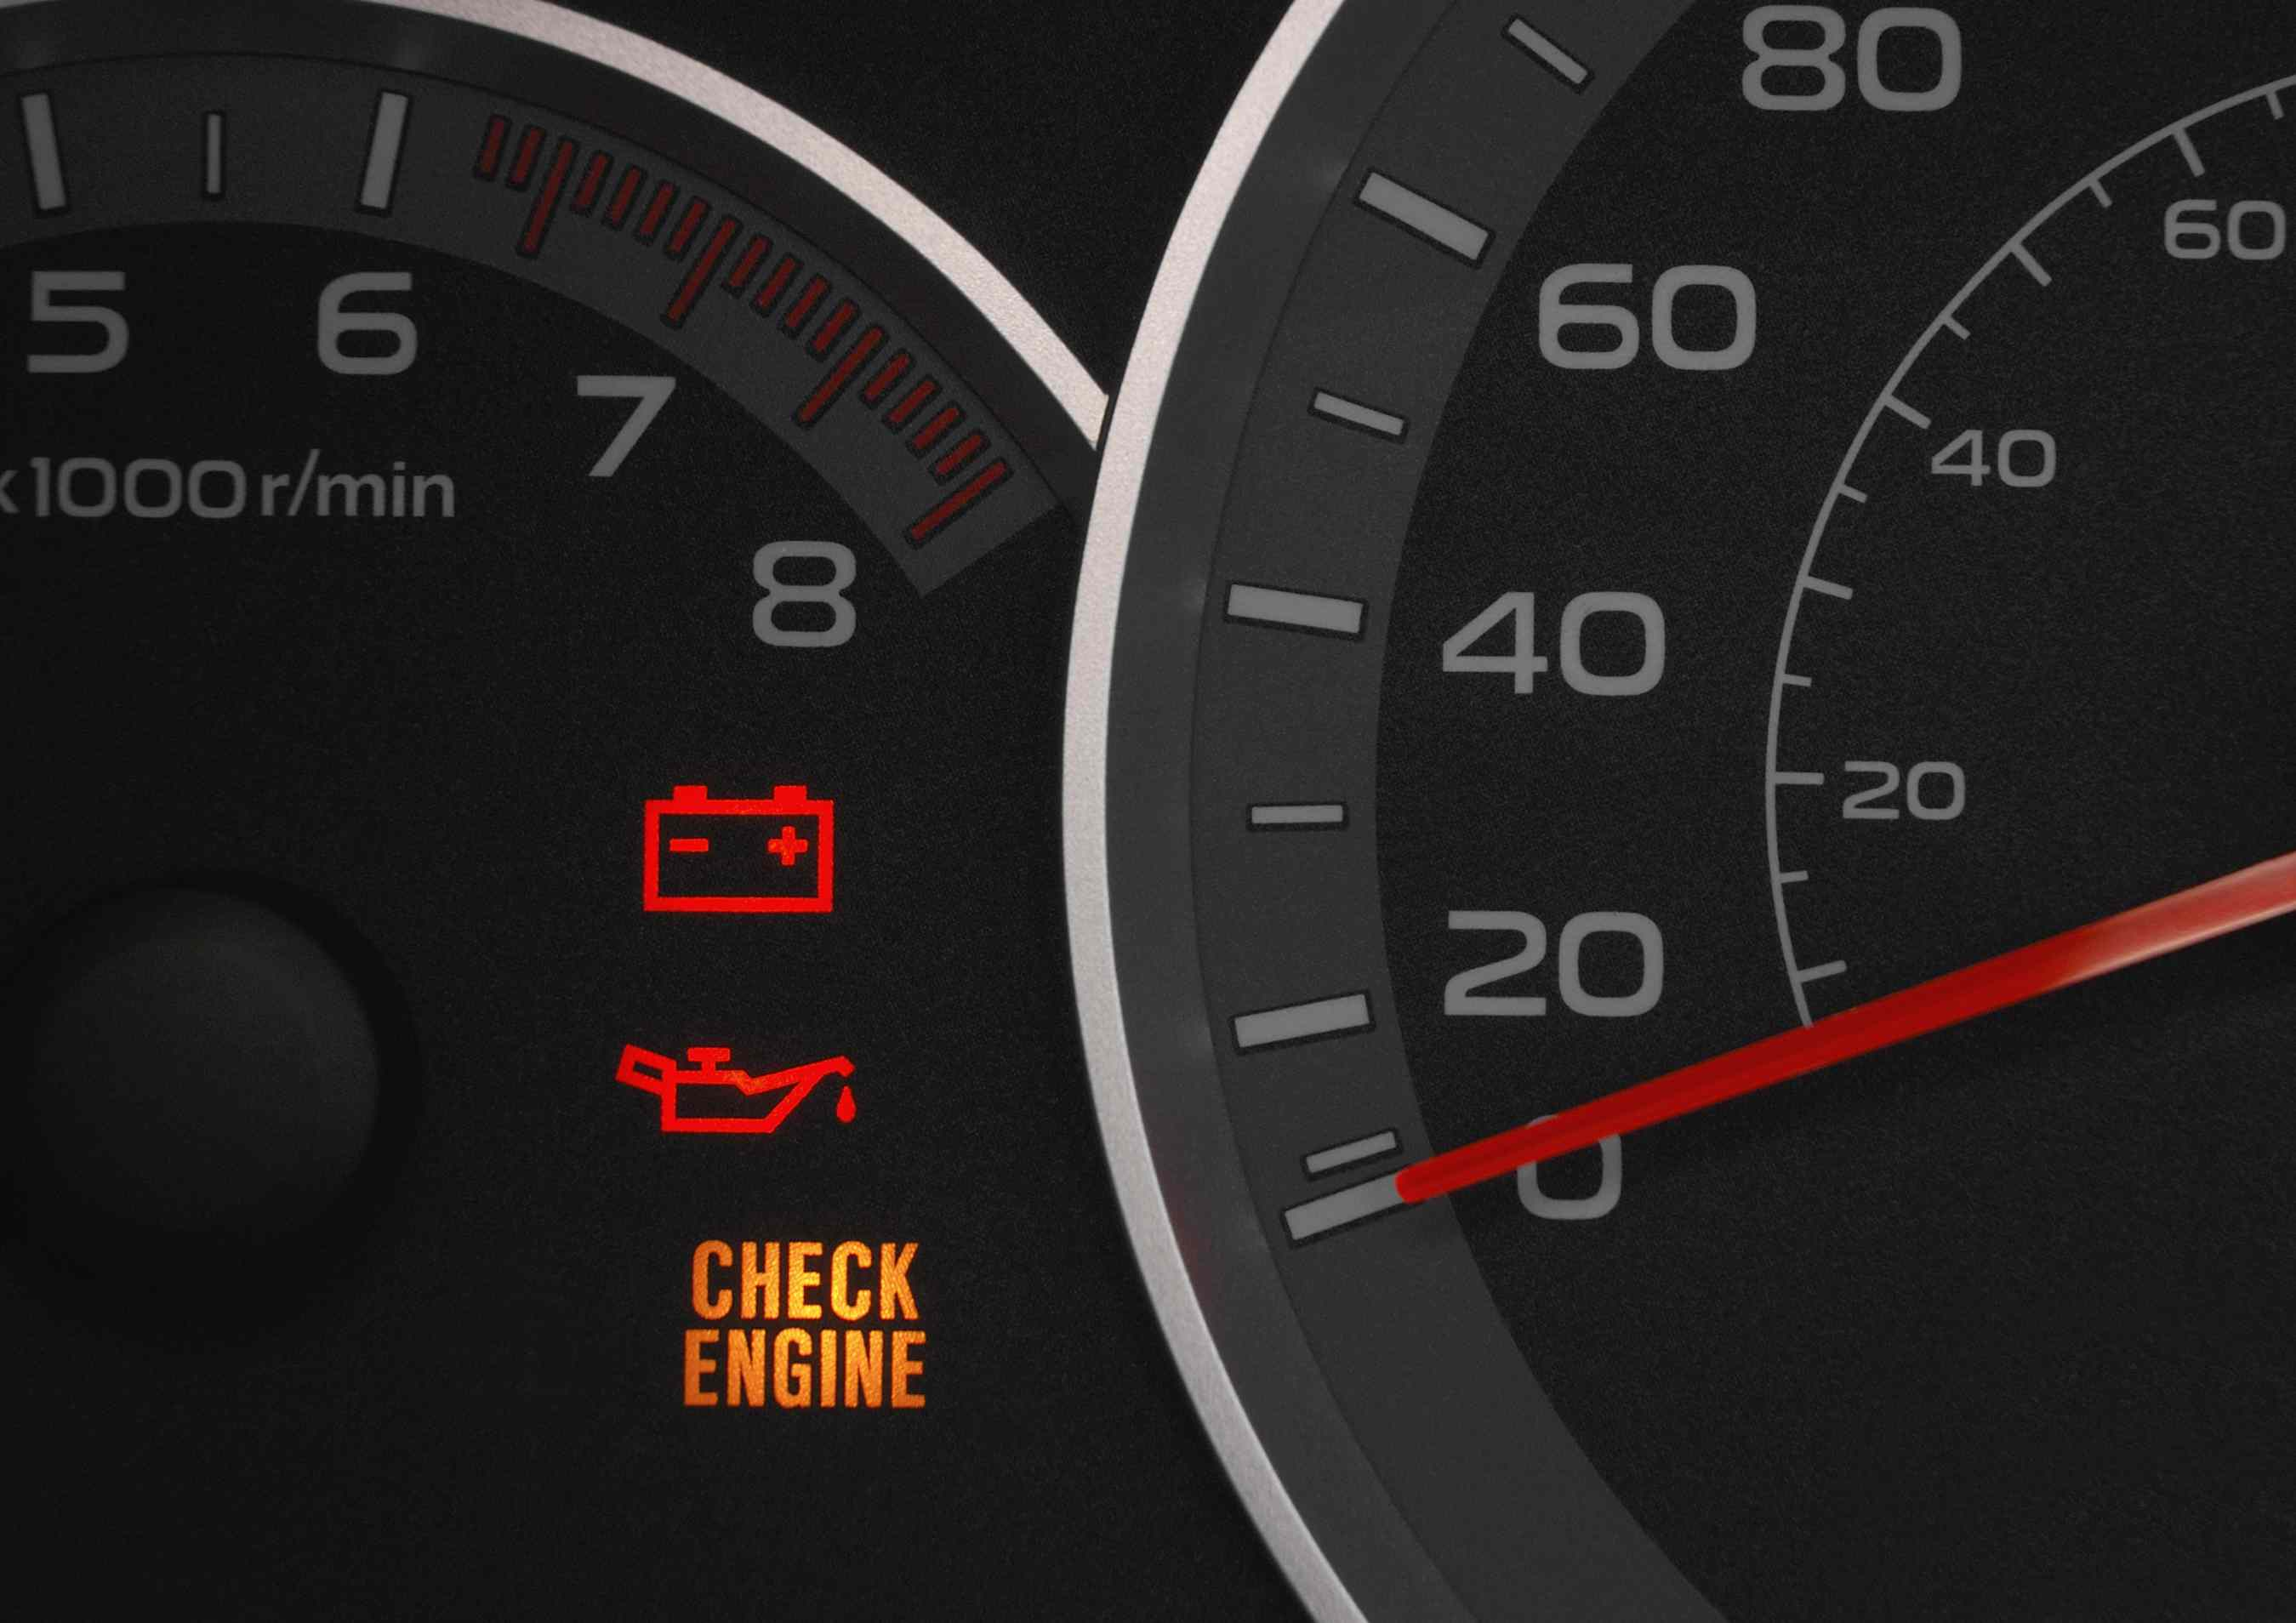 How To Reset A Check Engine Light Warn The Heat In An Automobile Close Up On Cluster With Warning Indicating Car Failure